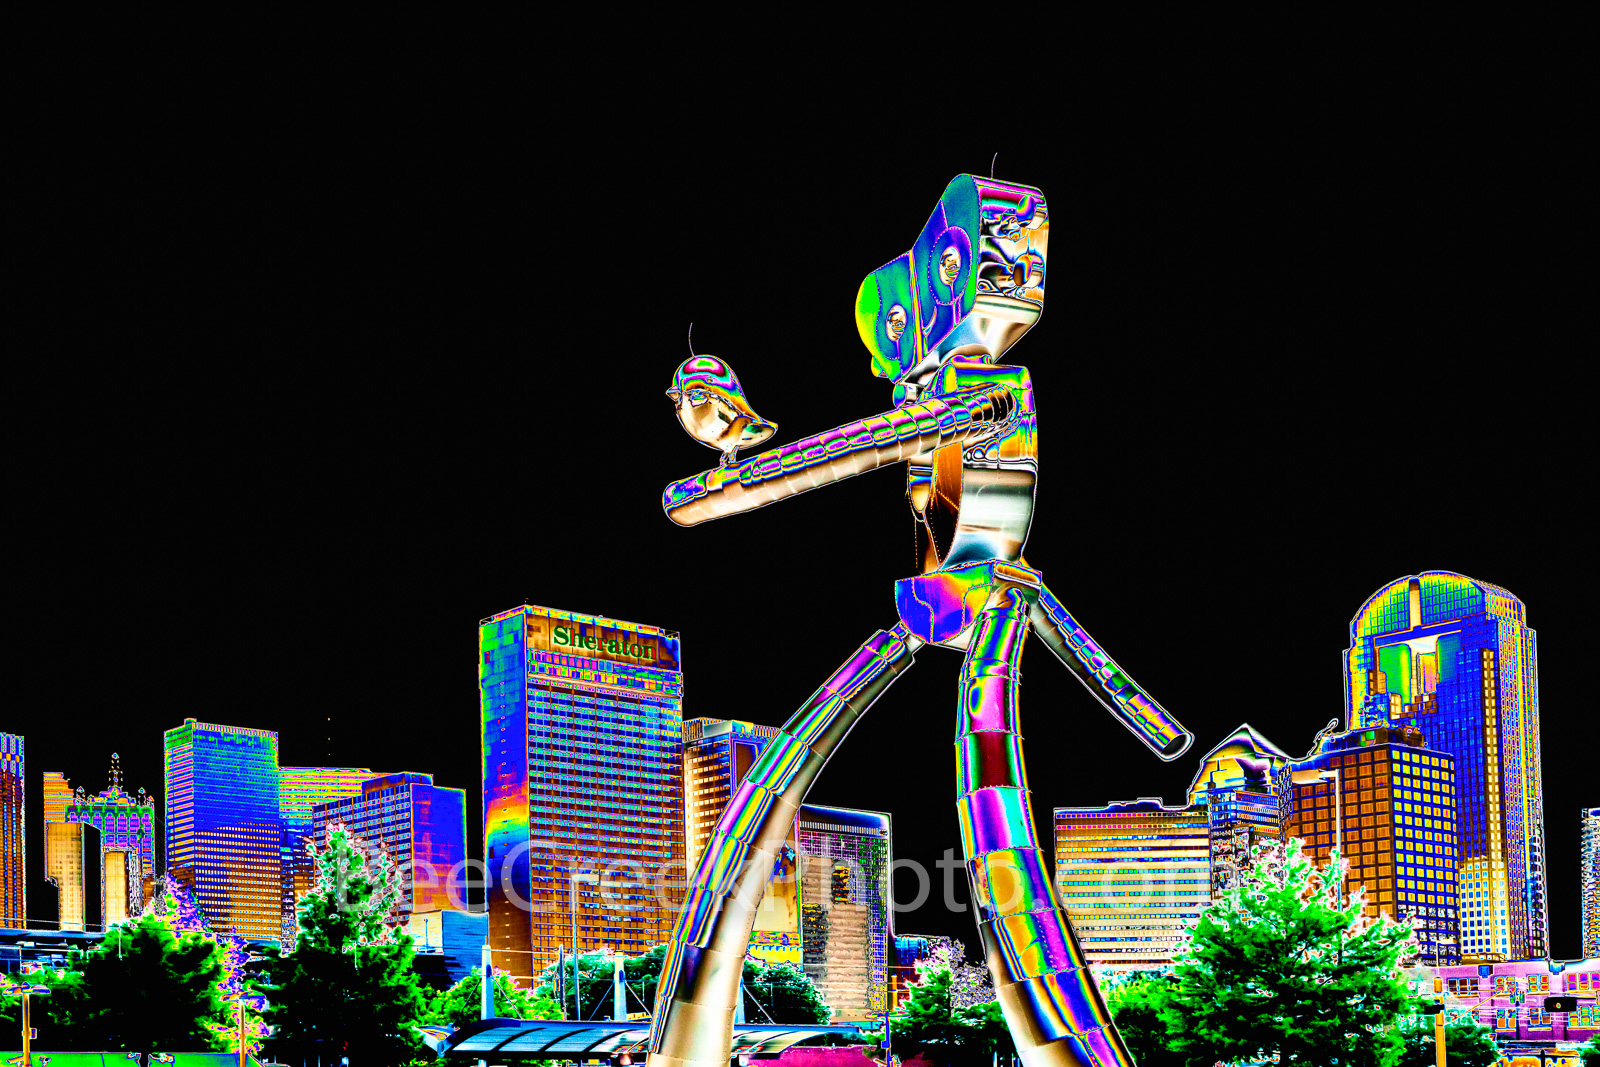 Psychedelic Dallas Traveling Man - A whismical creation of the 38 foot tall stainless steel robot sculpture in digital psychedelic...